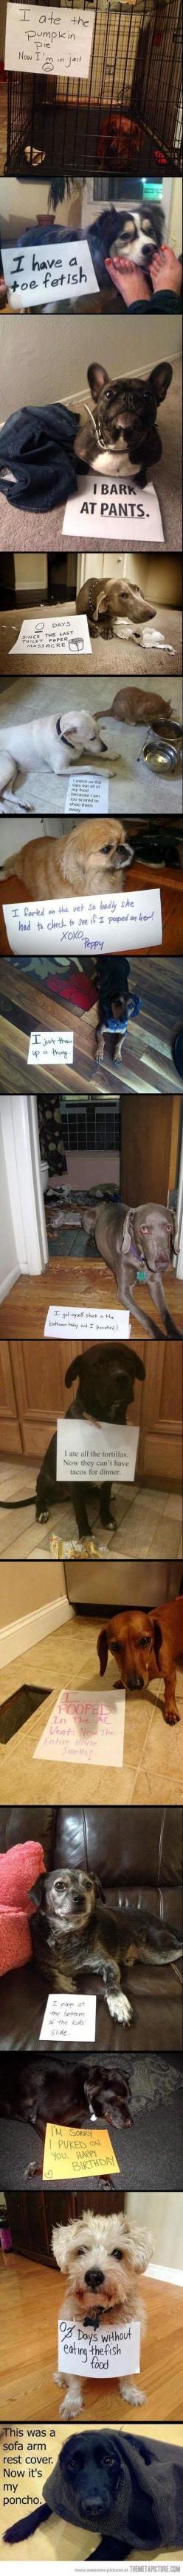 This made me laugh so hard after a horrible day. Haha.: Giggle, Dog Shame, Dog Shaming, Pet, Puppy, So Funny, Animal